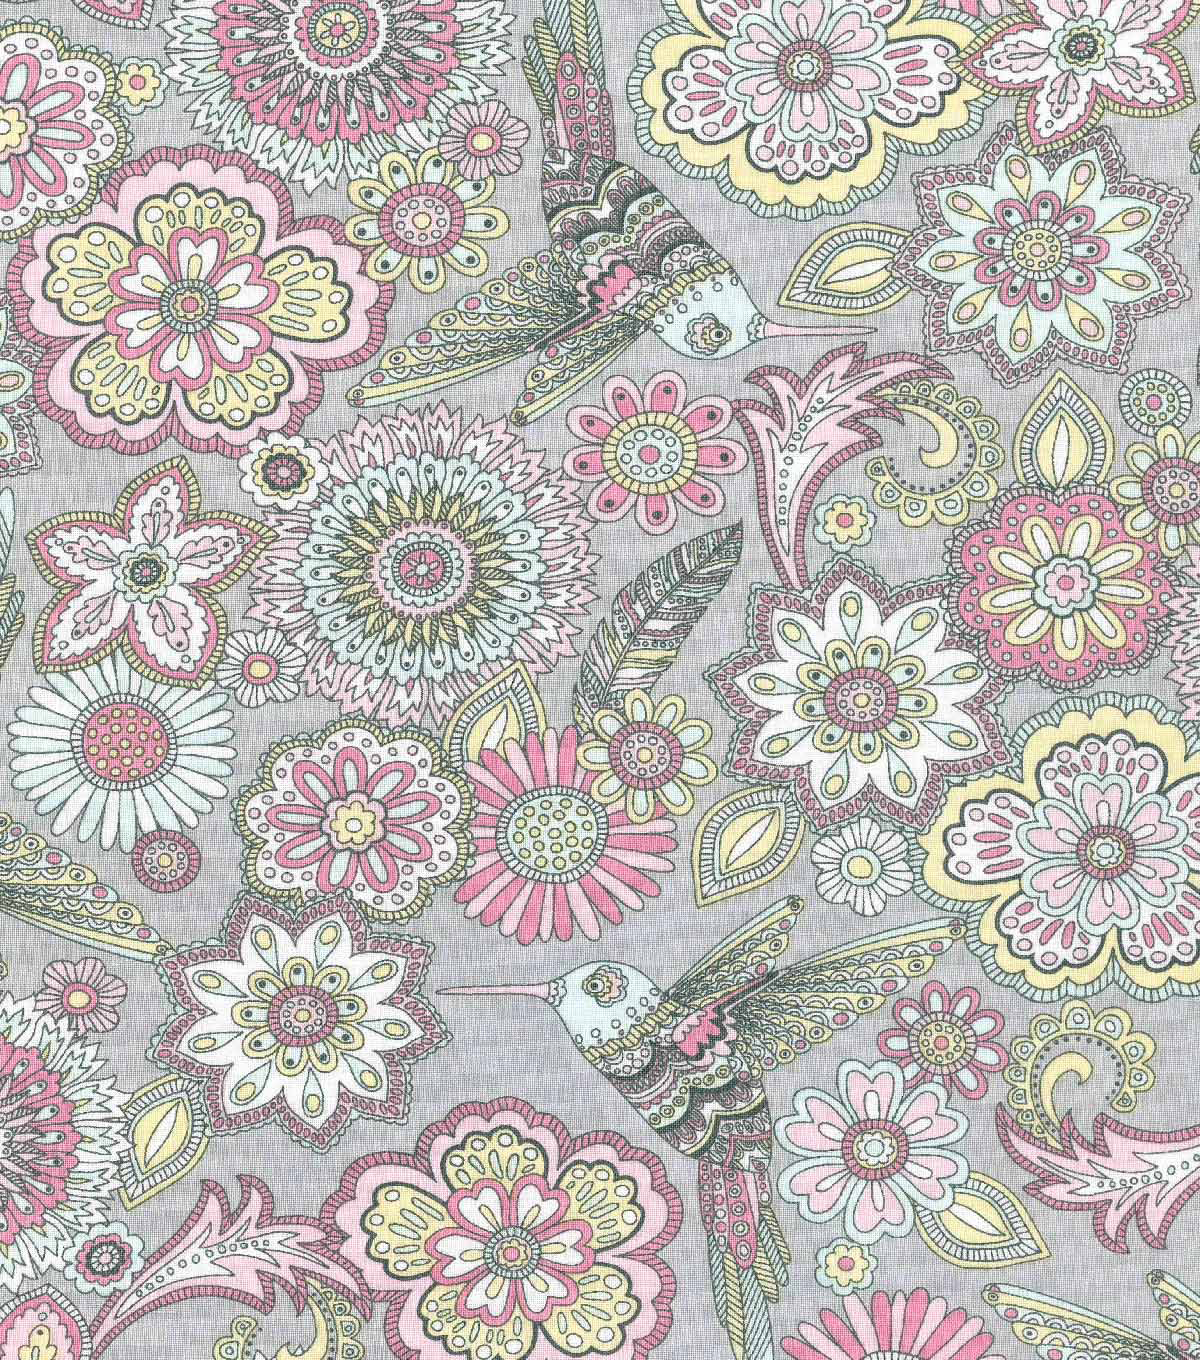 Keepsake Calico Cotton Fabric-Poppy Birds & Floral